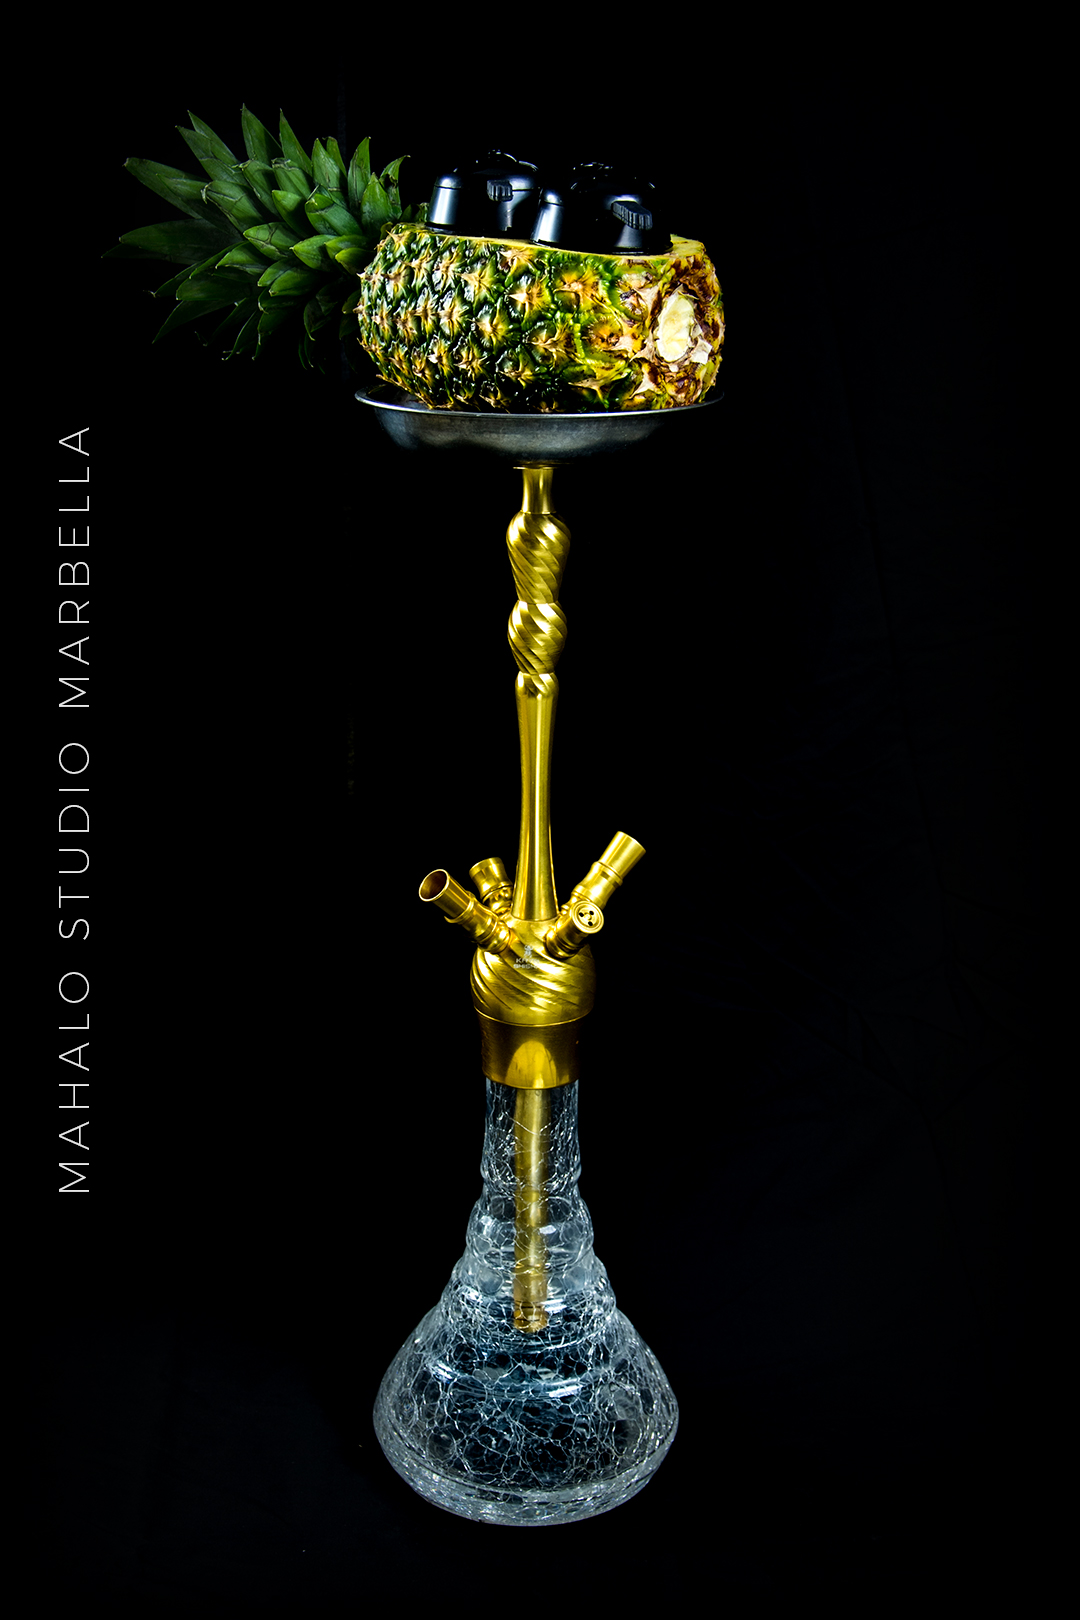 Pineapple Hookah Dark Black Background